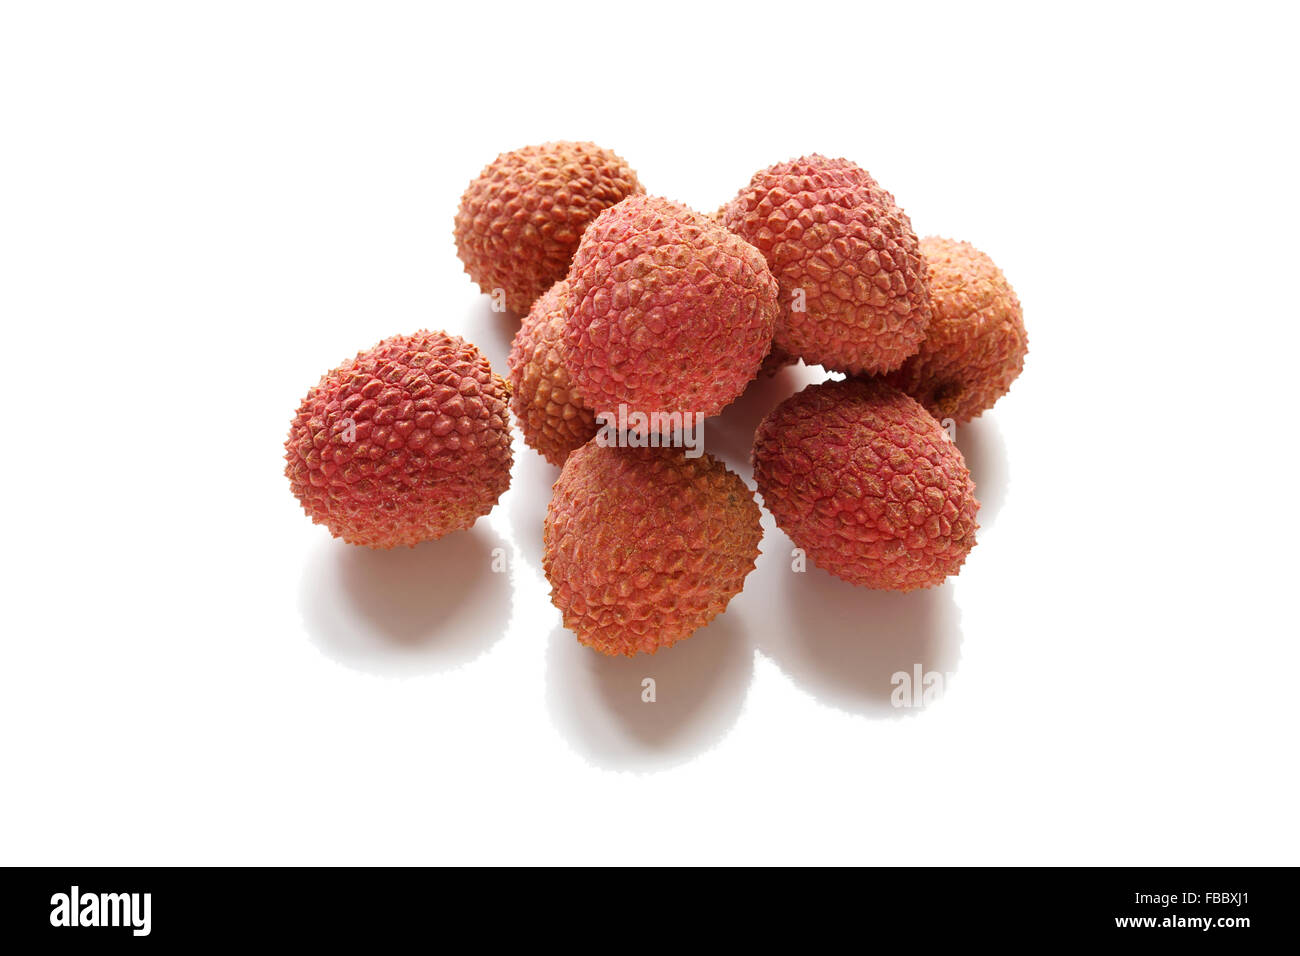 lychee or litchi chinensis - Stock Image